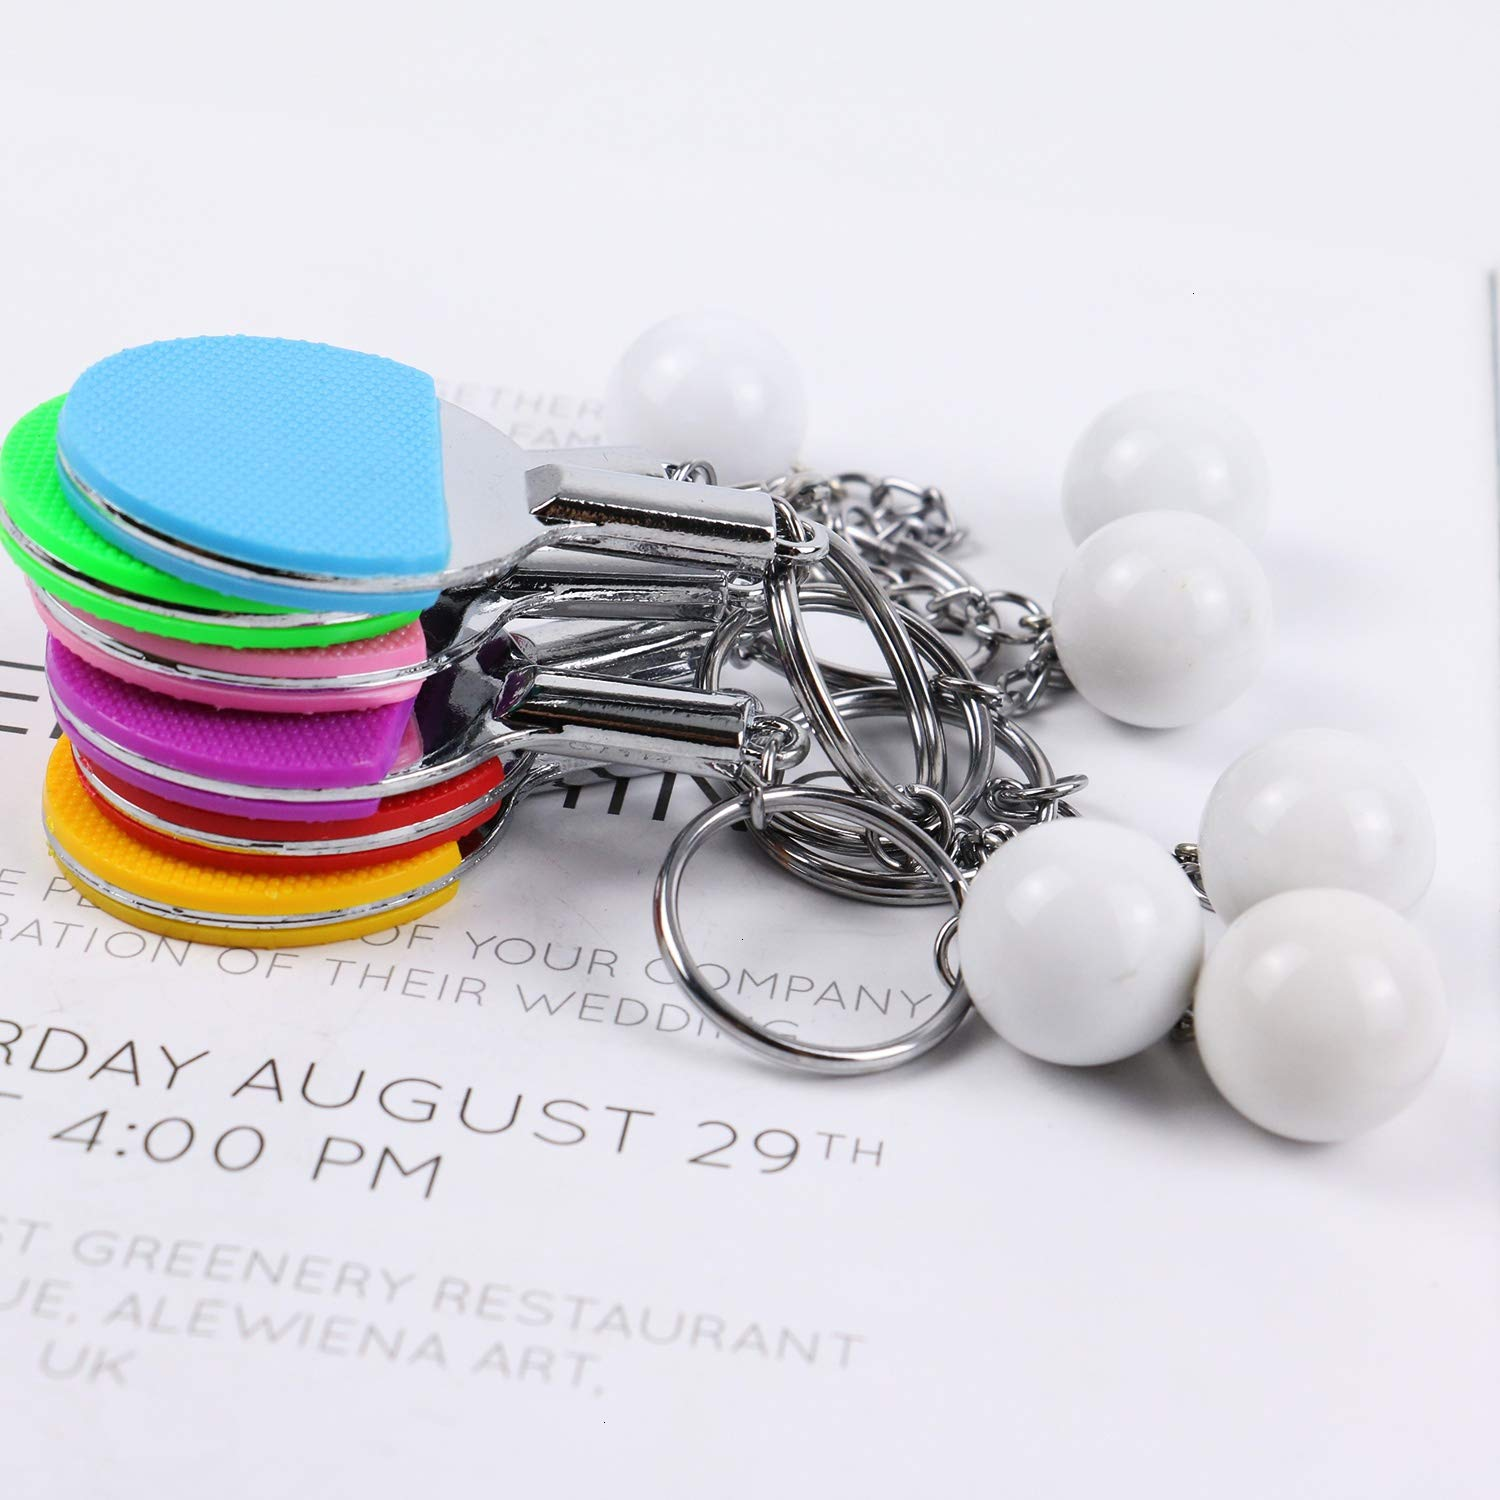 Pomeat 6Pcs Table Tennis Keychains Ping-Pong Racket /& Ball Key Chain Sport Style Keychain Set